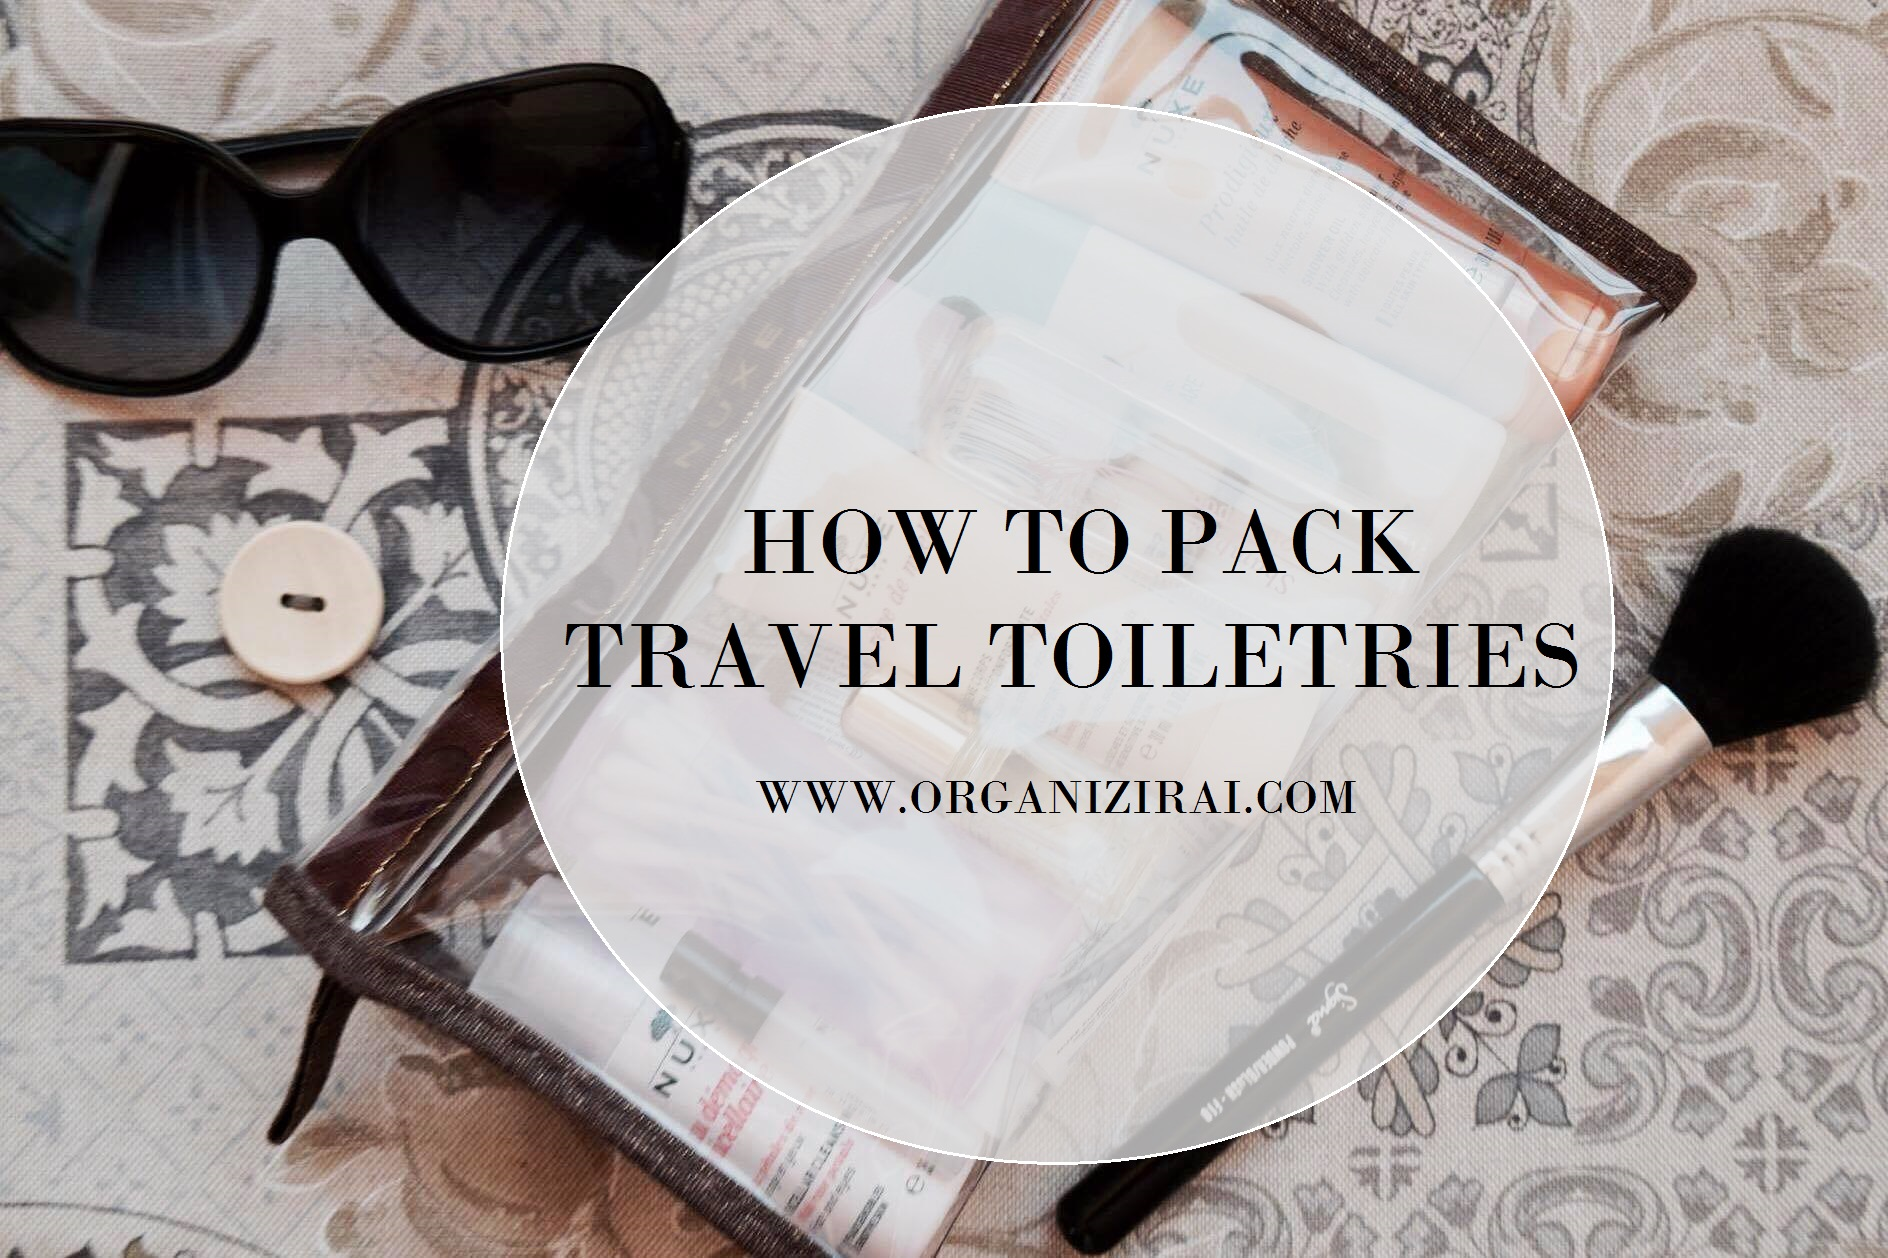 how-to-pack-travel-toiletries-small-packages-organizing-blog-organizirai.com_FACEBOOK